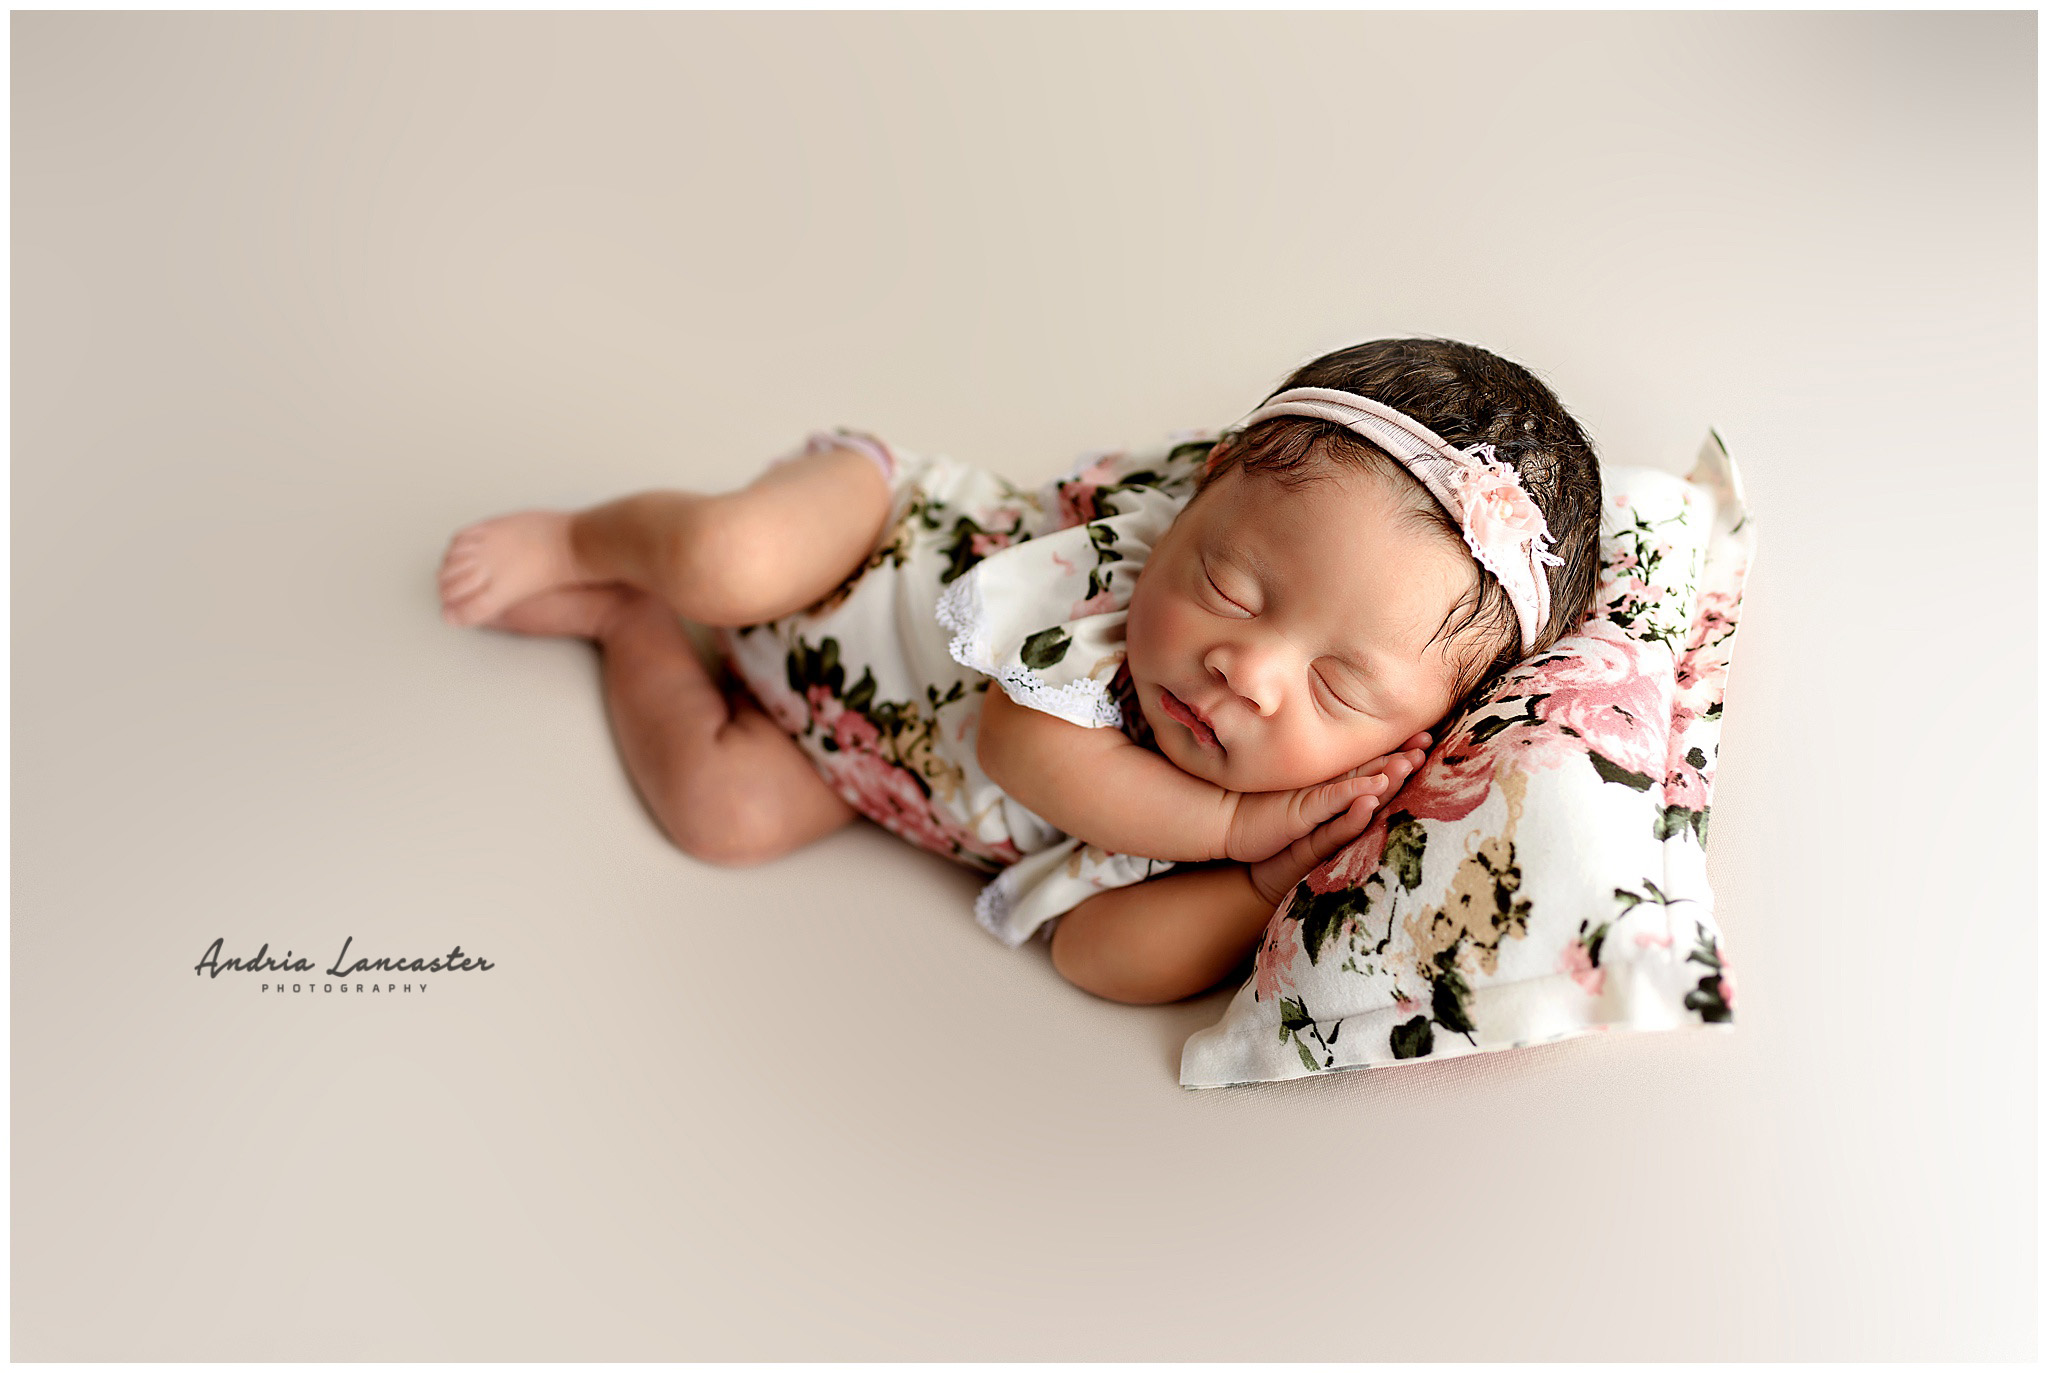 newborn in side laying pose on pillow pink floral